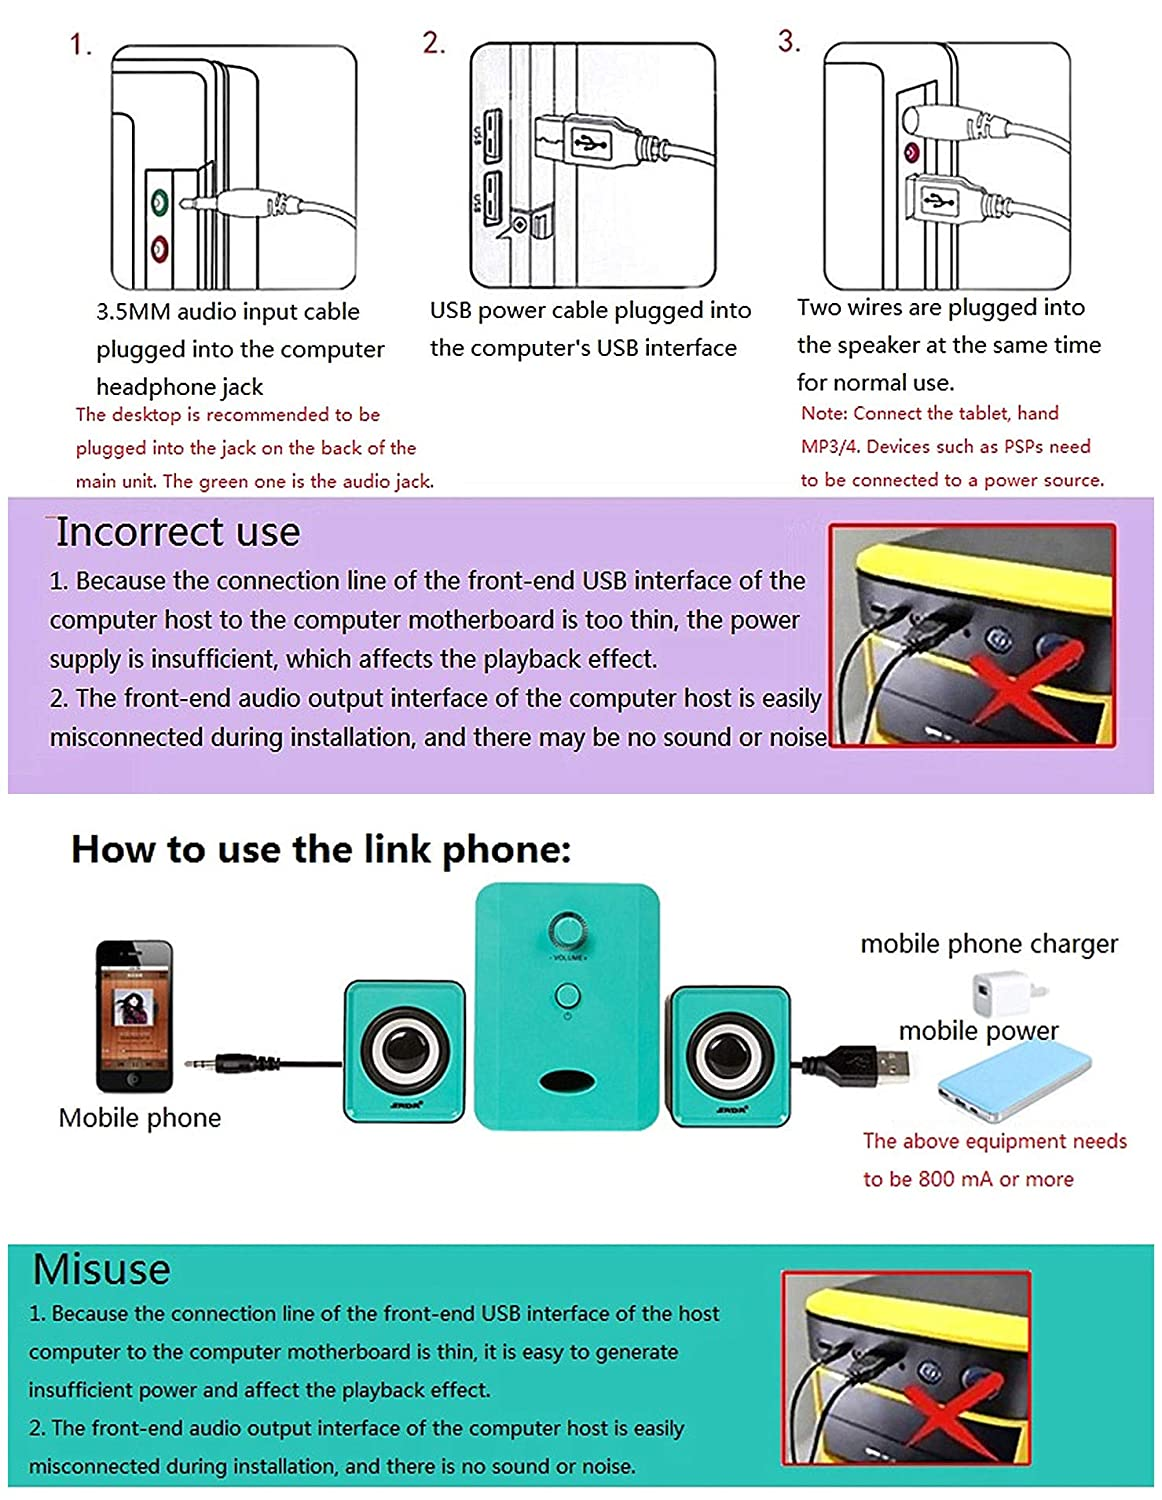 Computer Speaker Usb Small Mighty Multimedia Cell Phone Headphone Jack Wiring Mini For Desktop Laptop Gaming Smartphones Tablets Computers Accessories